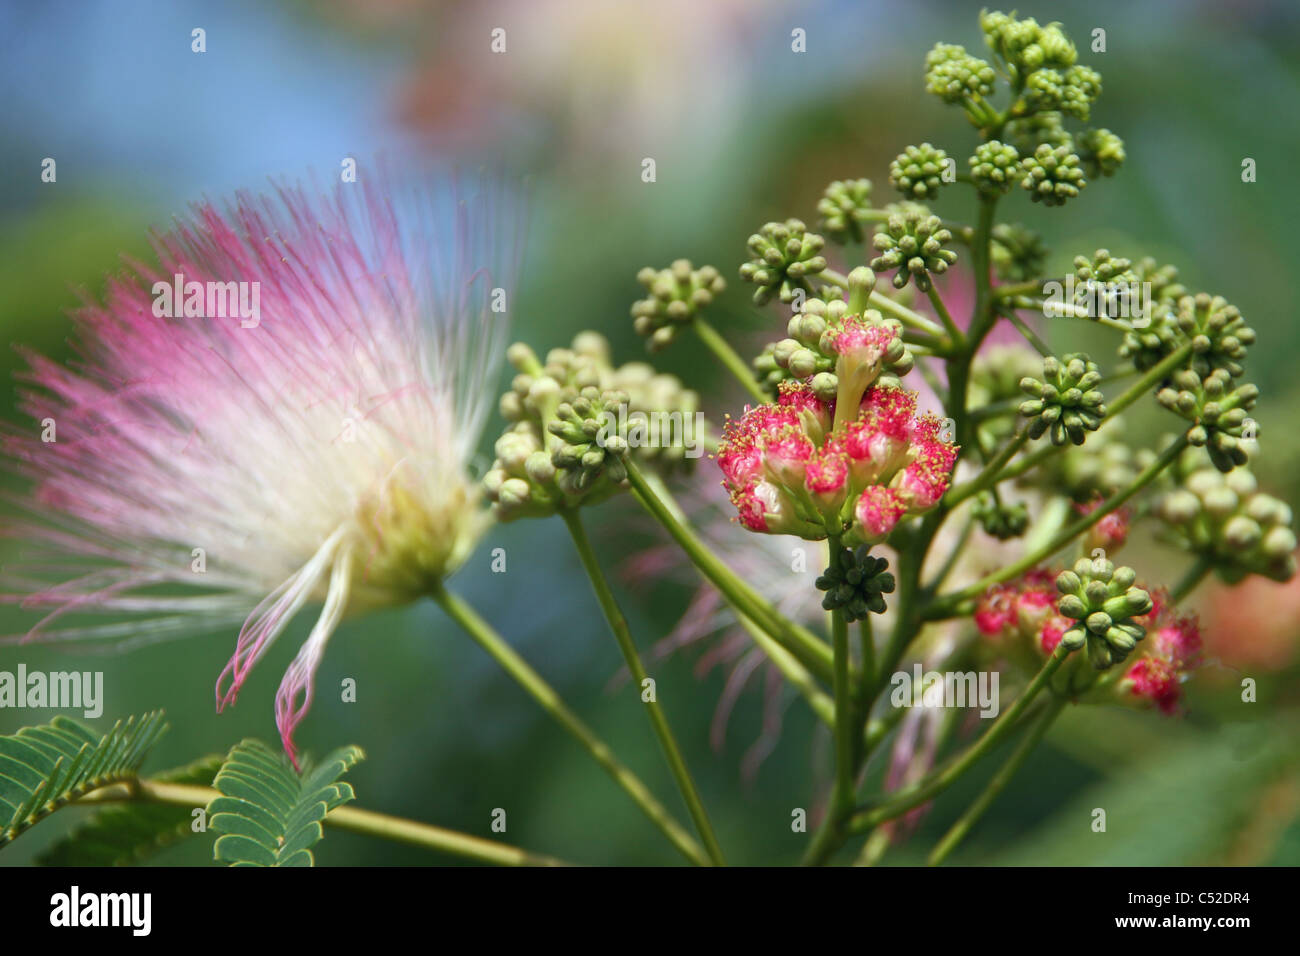 Pink Fluffy Blooms Stock Photos Pink Fluffy Blooms Stock Images